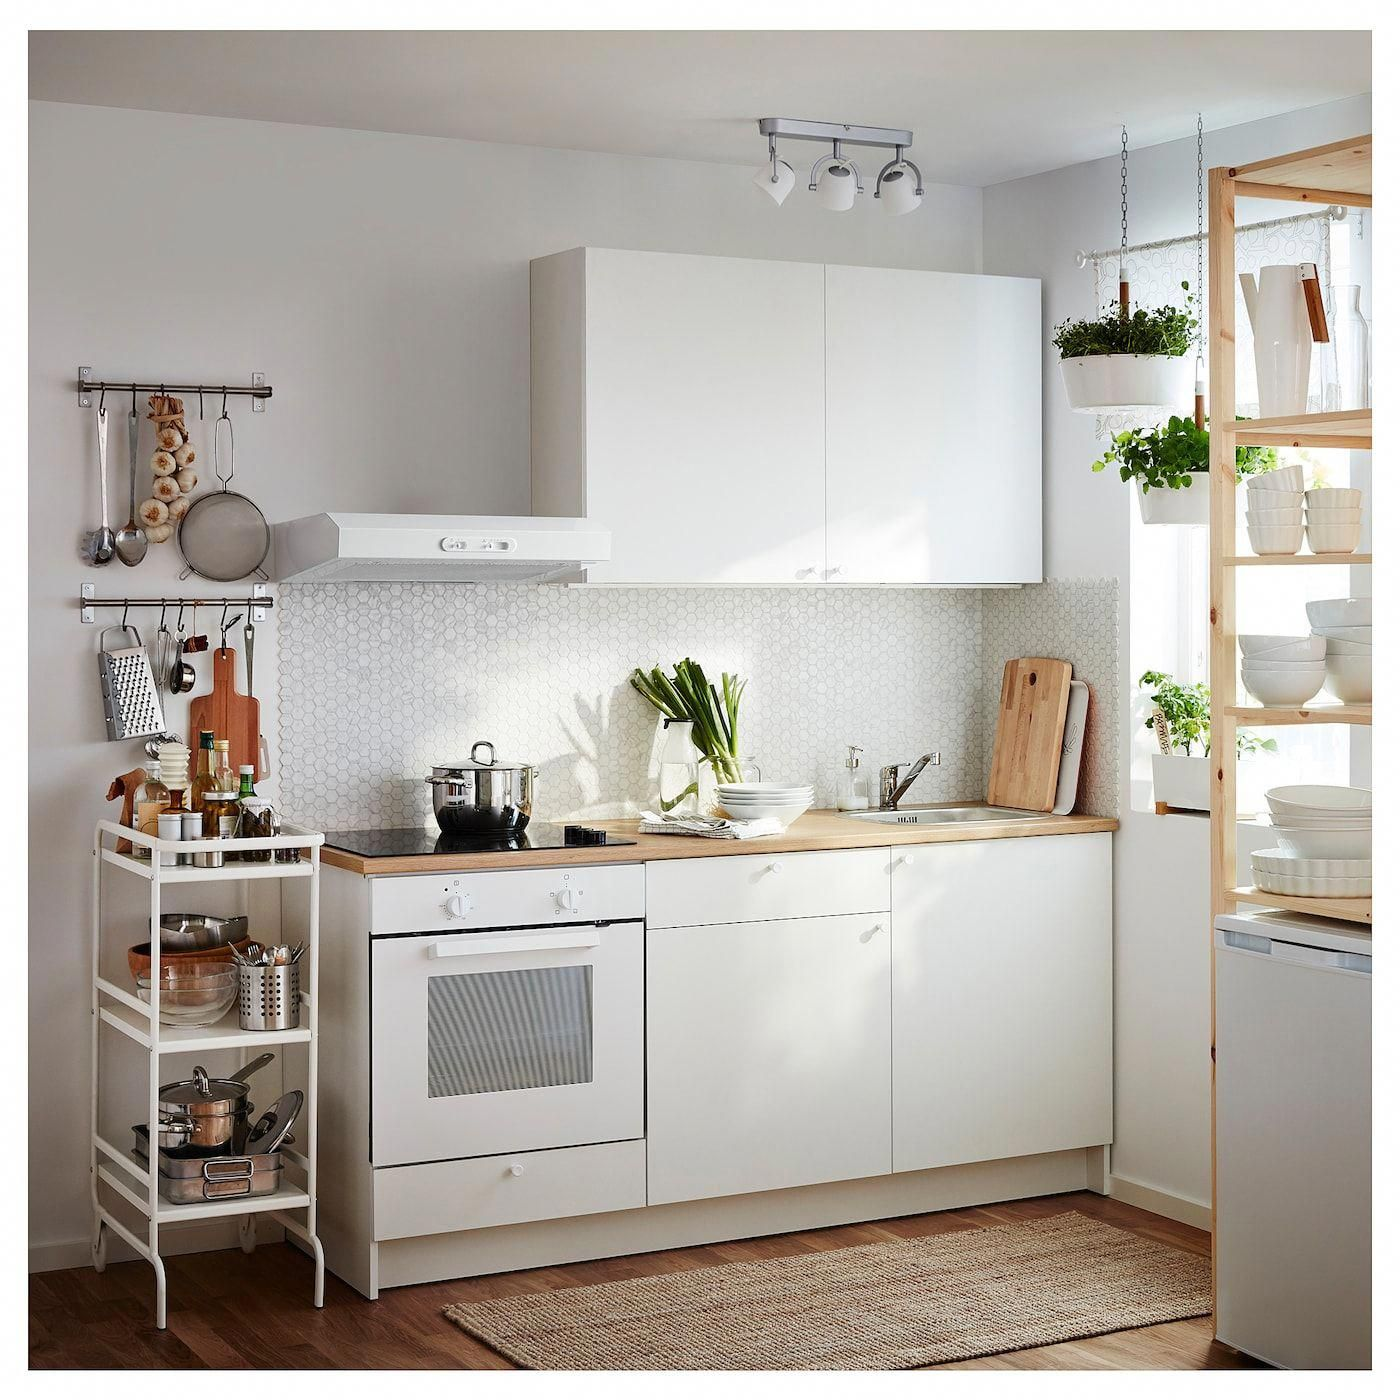 Knoxhult Base Cabinet With Doors And Drawer White Countertop Length 72 3 8 Ikea Apartment Kitchen Kitchen Trends Minimalist Kitchen